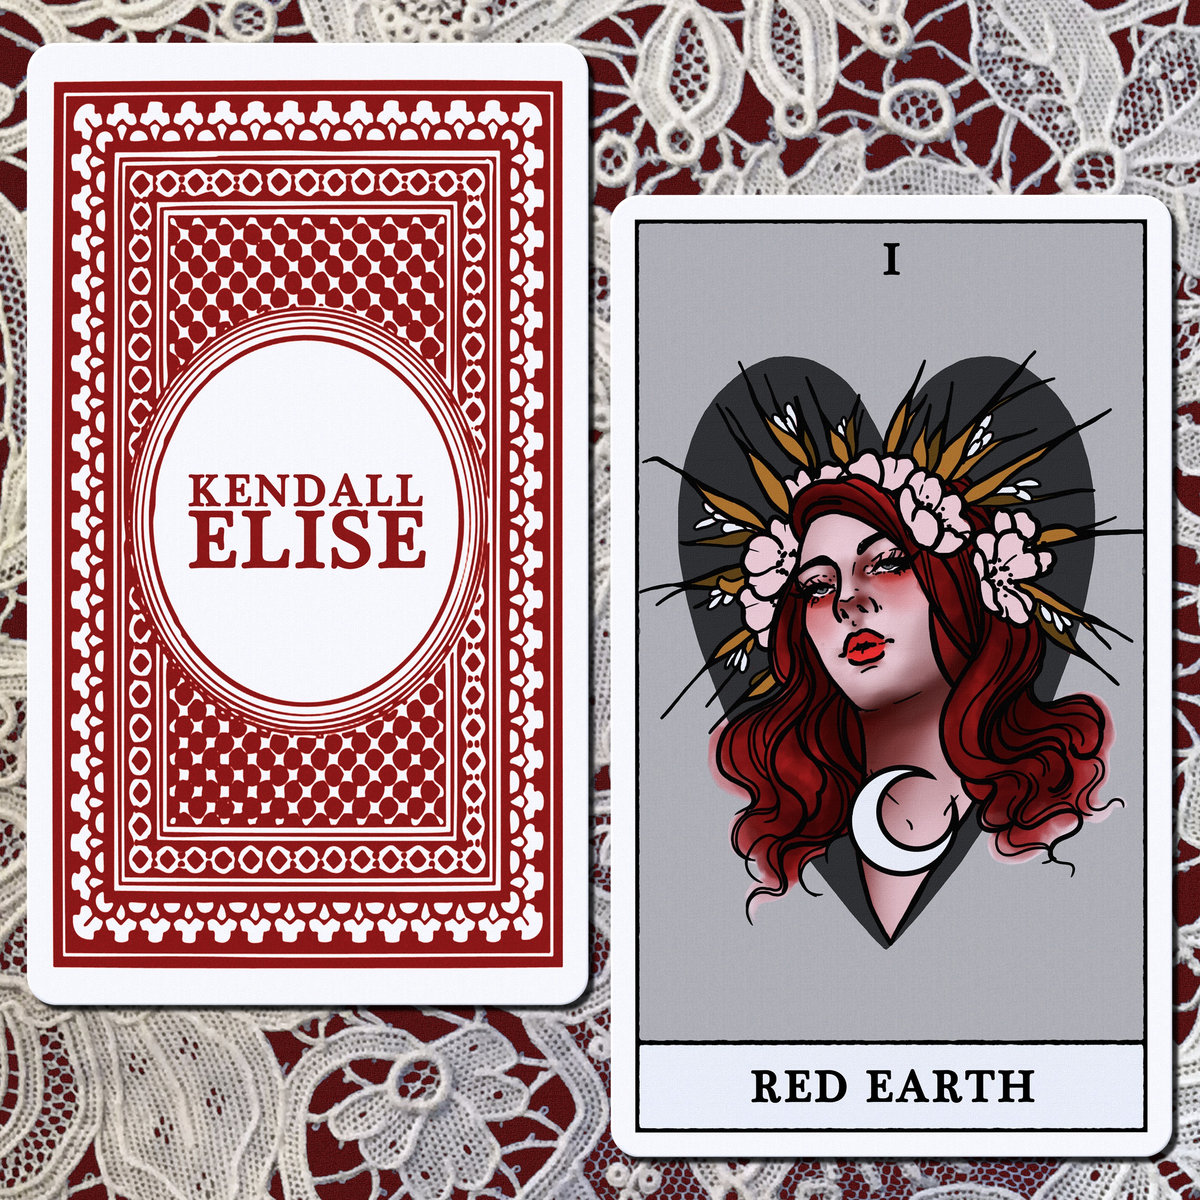 Kendall Elise Red Earth